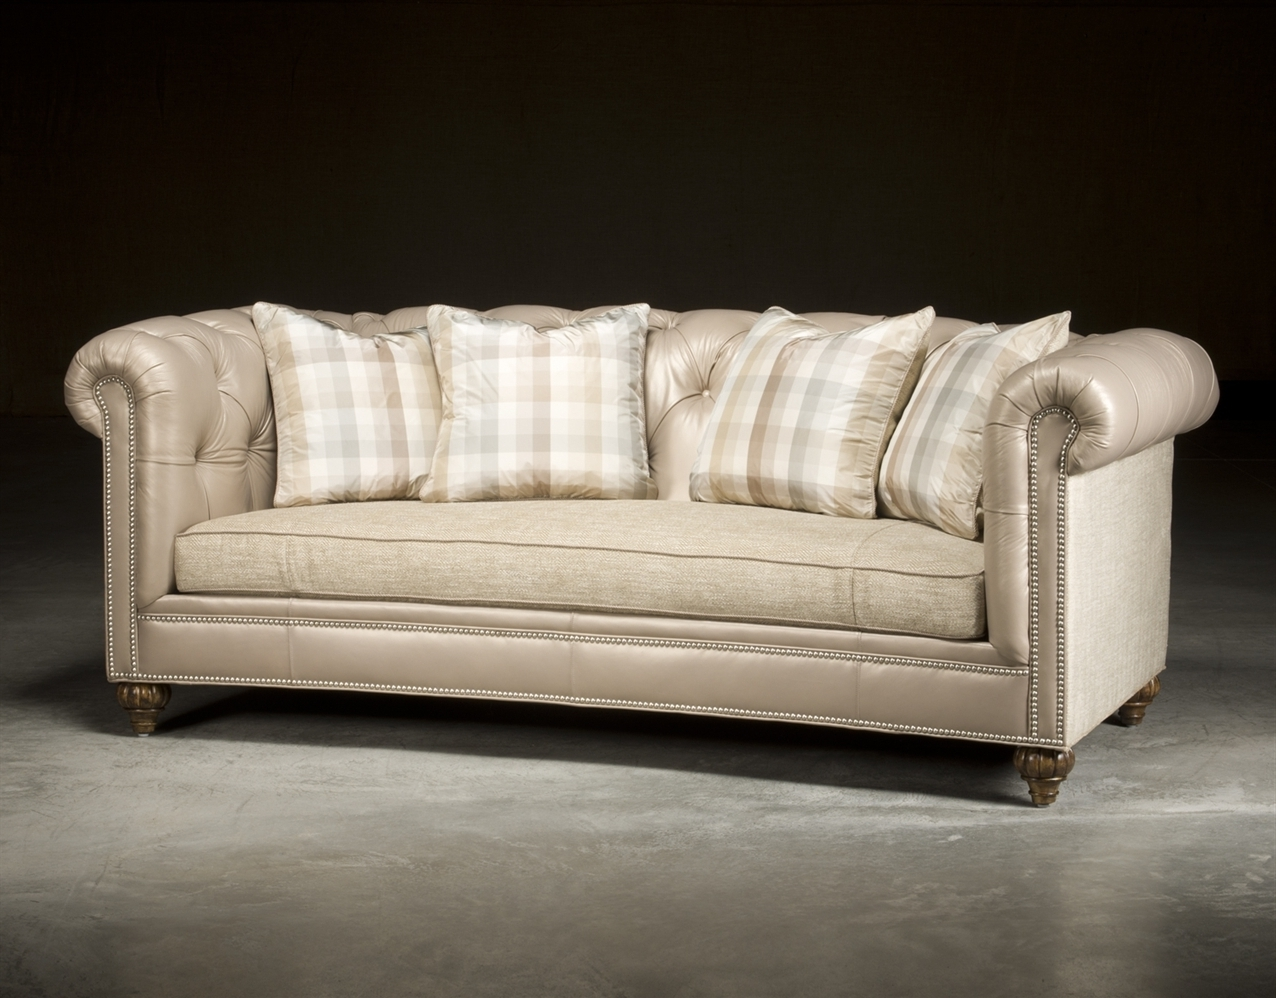 Sofa : Formal Sofa Sofa Clearance High Quality Furniture Brands Pertaining To Most Current Mid Range Sofas (View 14 of 15)